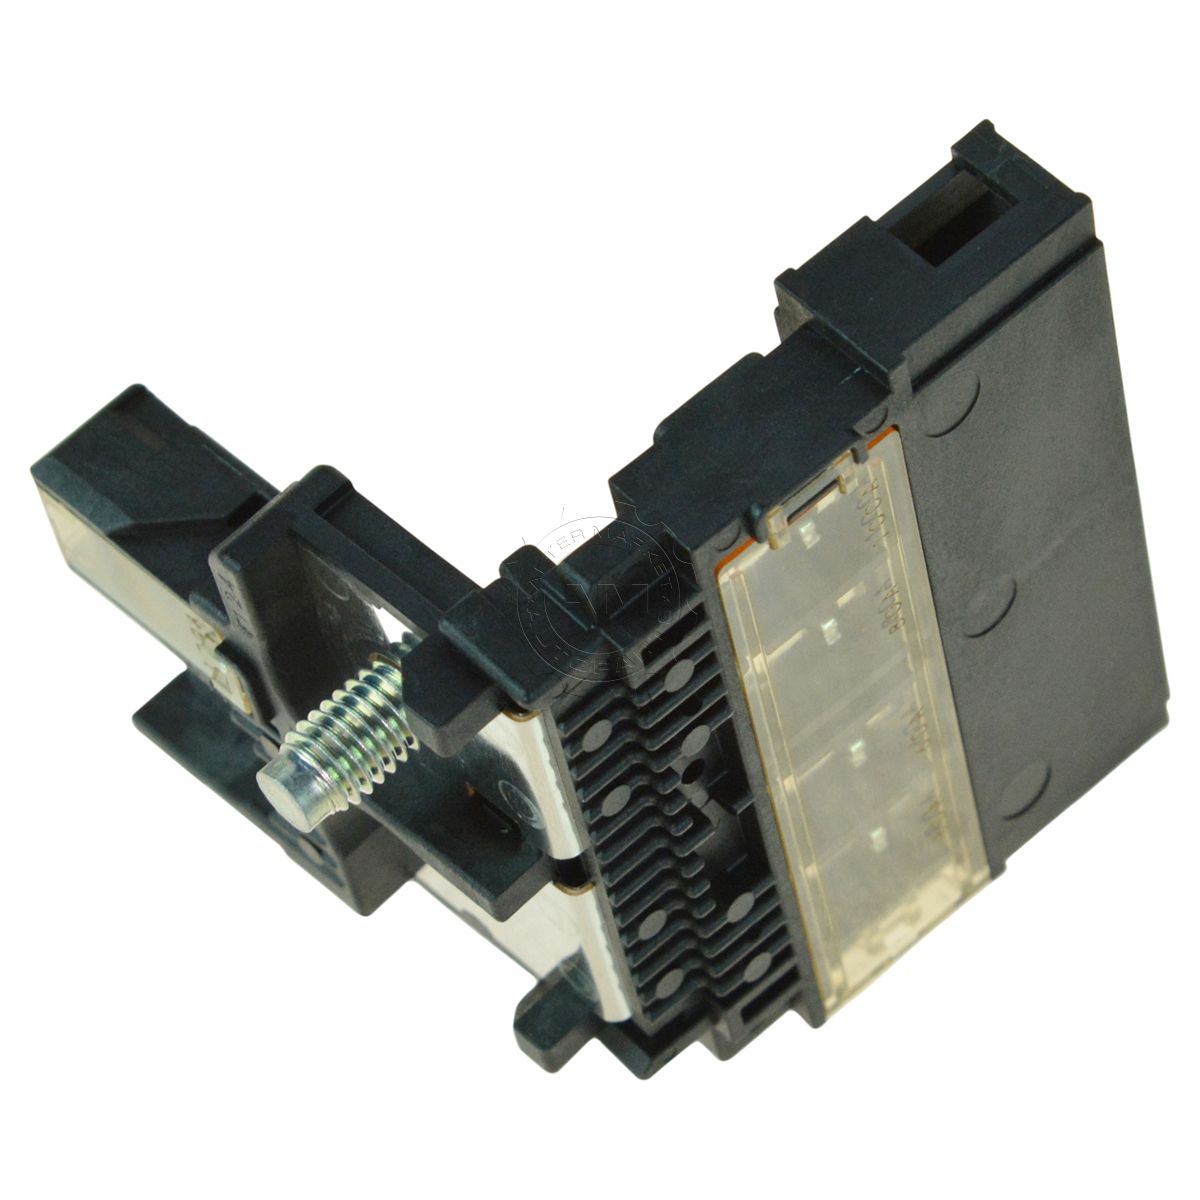 Oem 24380 79912 Fuse Block Holder Connector Link For Murano Note 2007 Nissan Versa Hatchback Box Altima Maxima